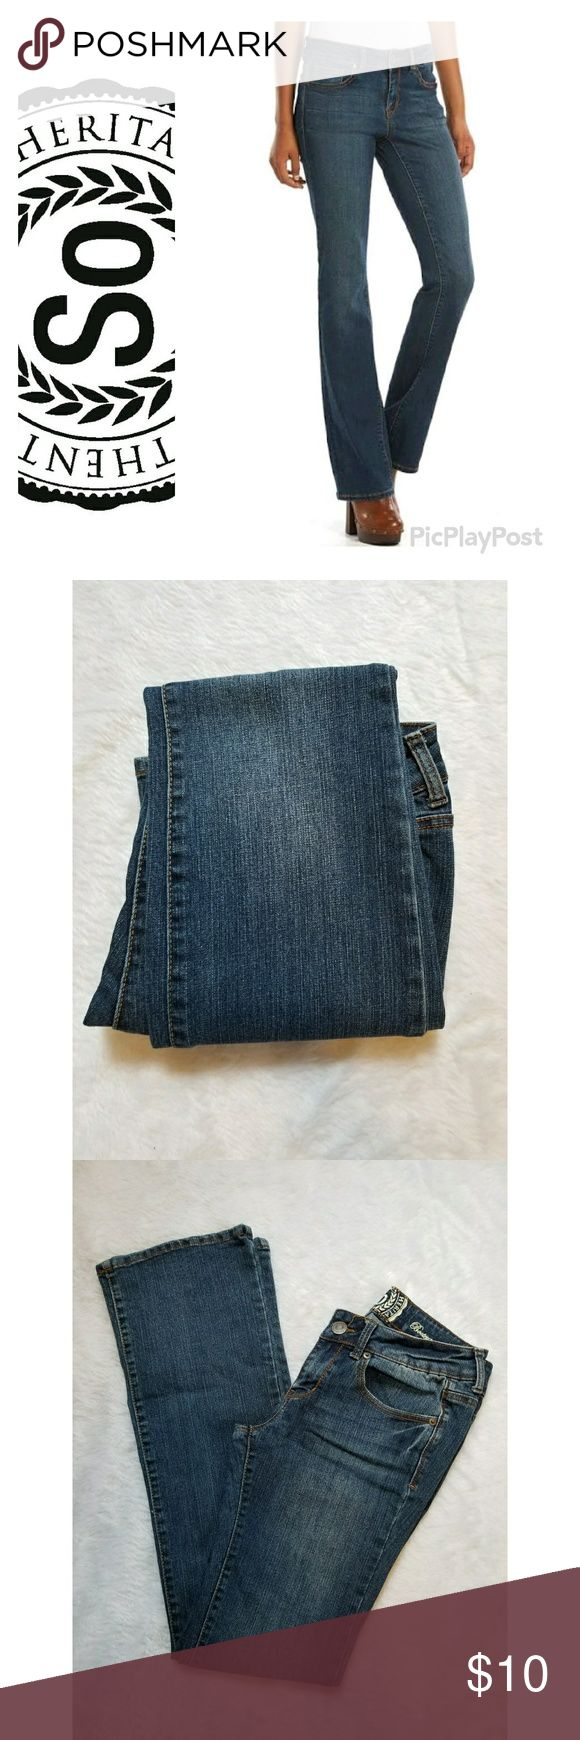 """Kohl's 'SO' Juniors Dark Wash Bootcut Jeans Kohl's exclusive 'SO' brand juniors dark wash bootcut jeans. Size 7 long. Great pre-owned condition, no visible flaws.  Approximate length (laying flat): Inseam - 31.5"""" SO Jeans Boot Cut"""